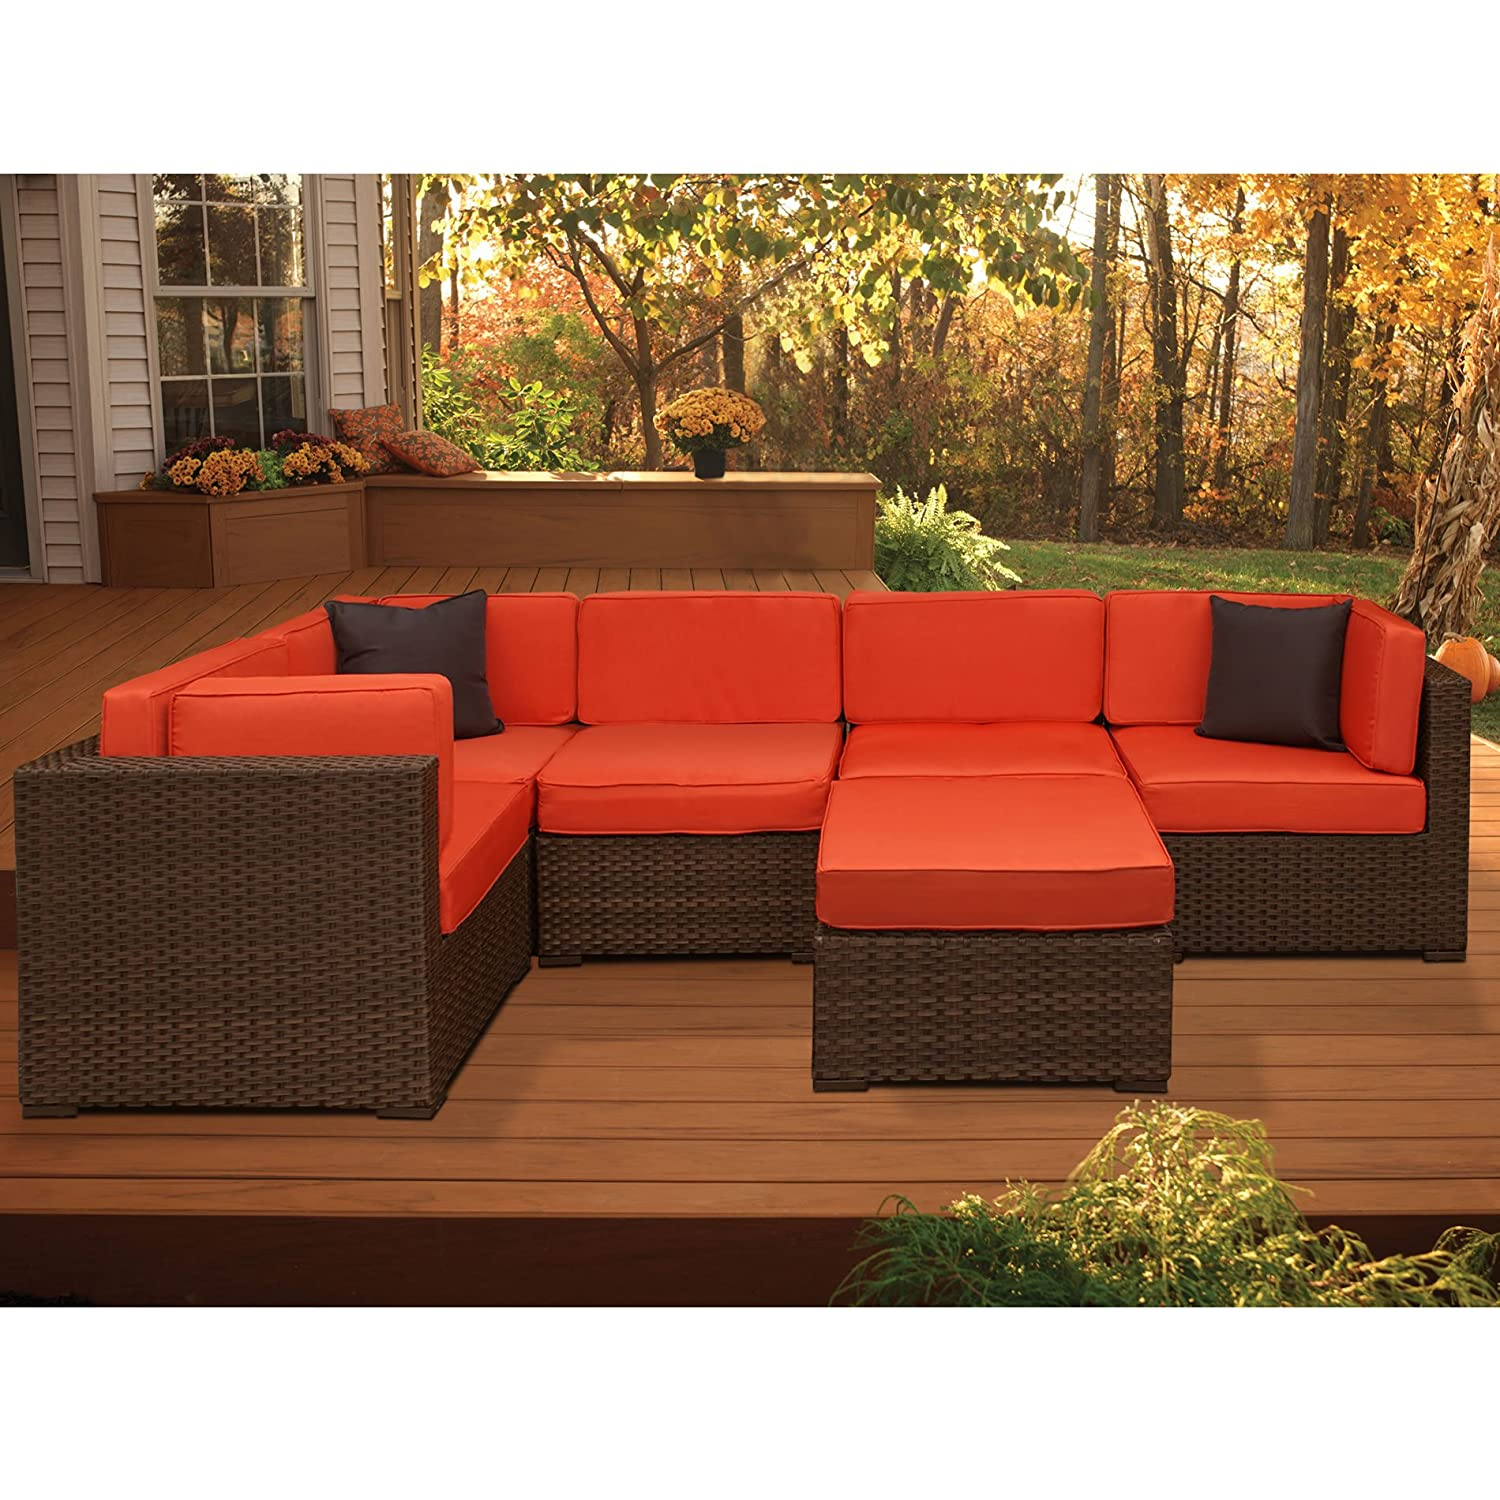 sears depot home ideas furnit wicker sets patio closeout sectional wrought furniture iron outdoor sale denver cushions kmart majestic for appealing